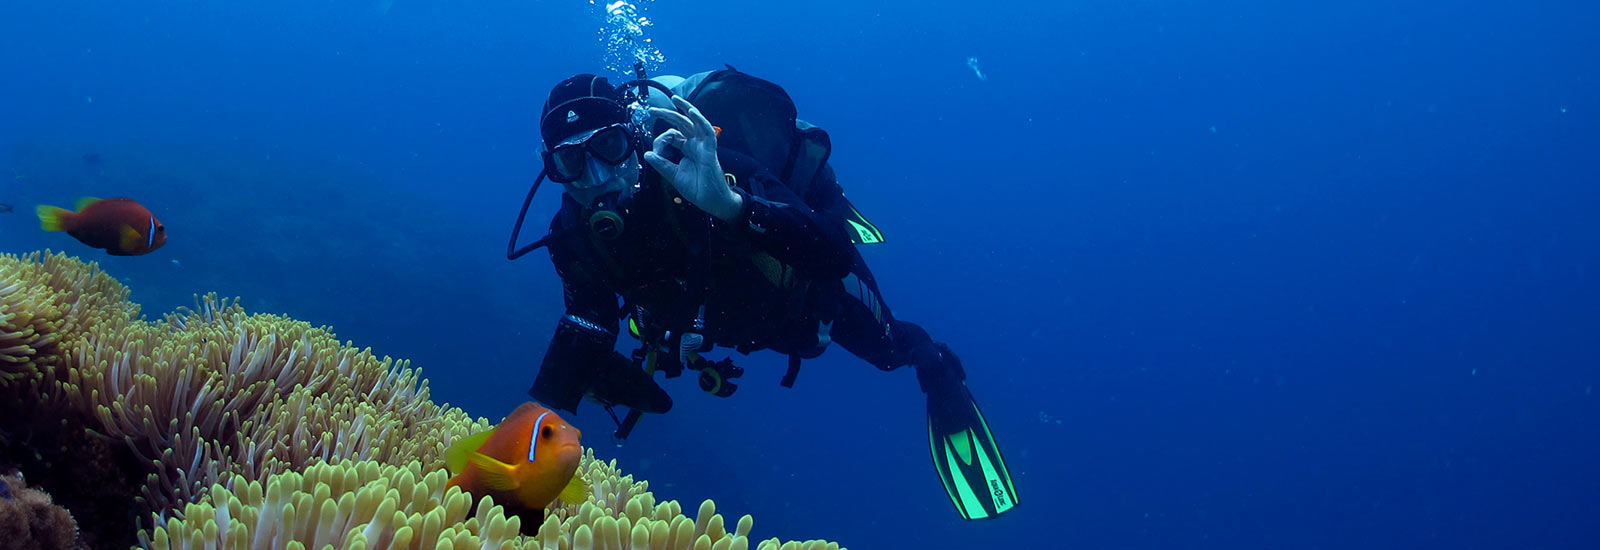 6 types of dives off a diving